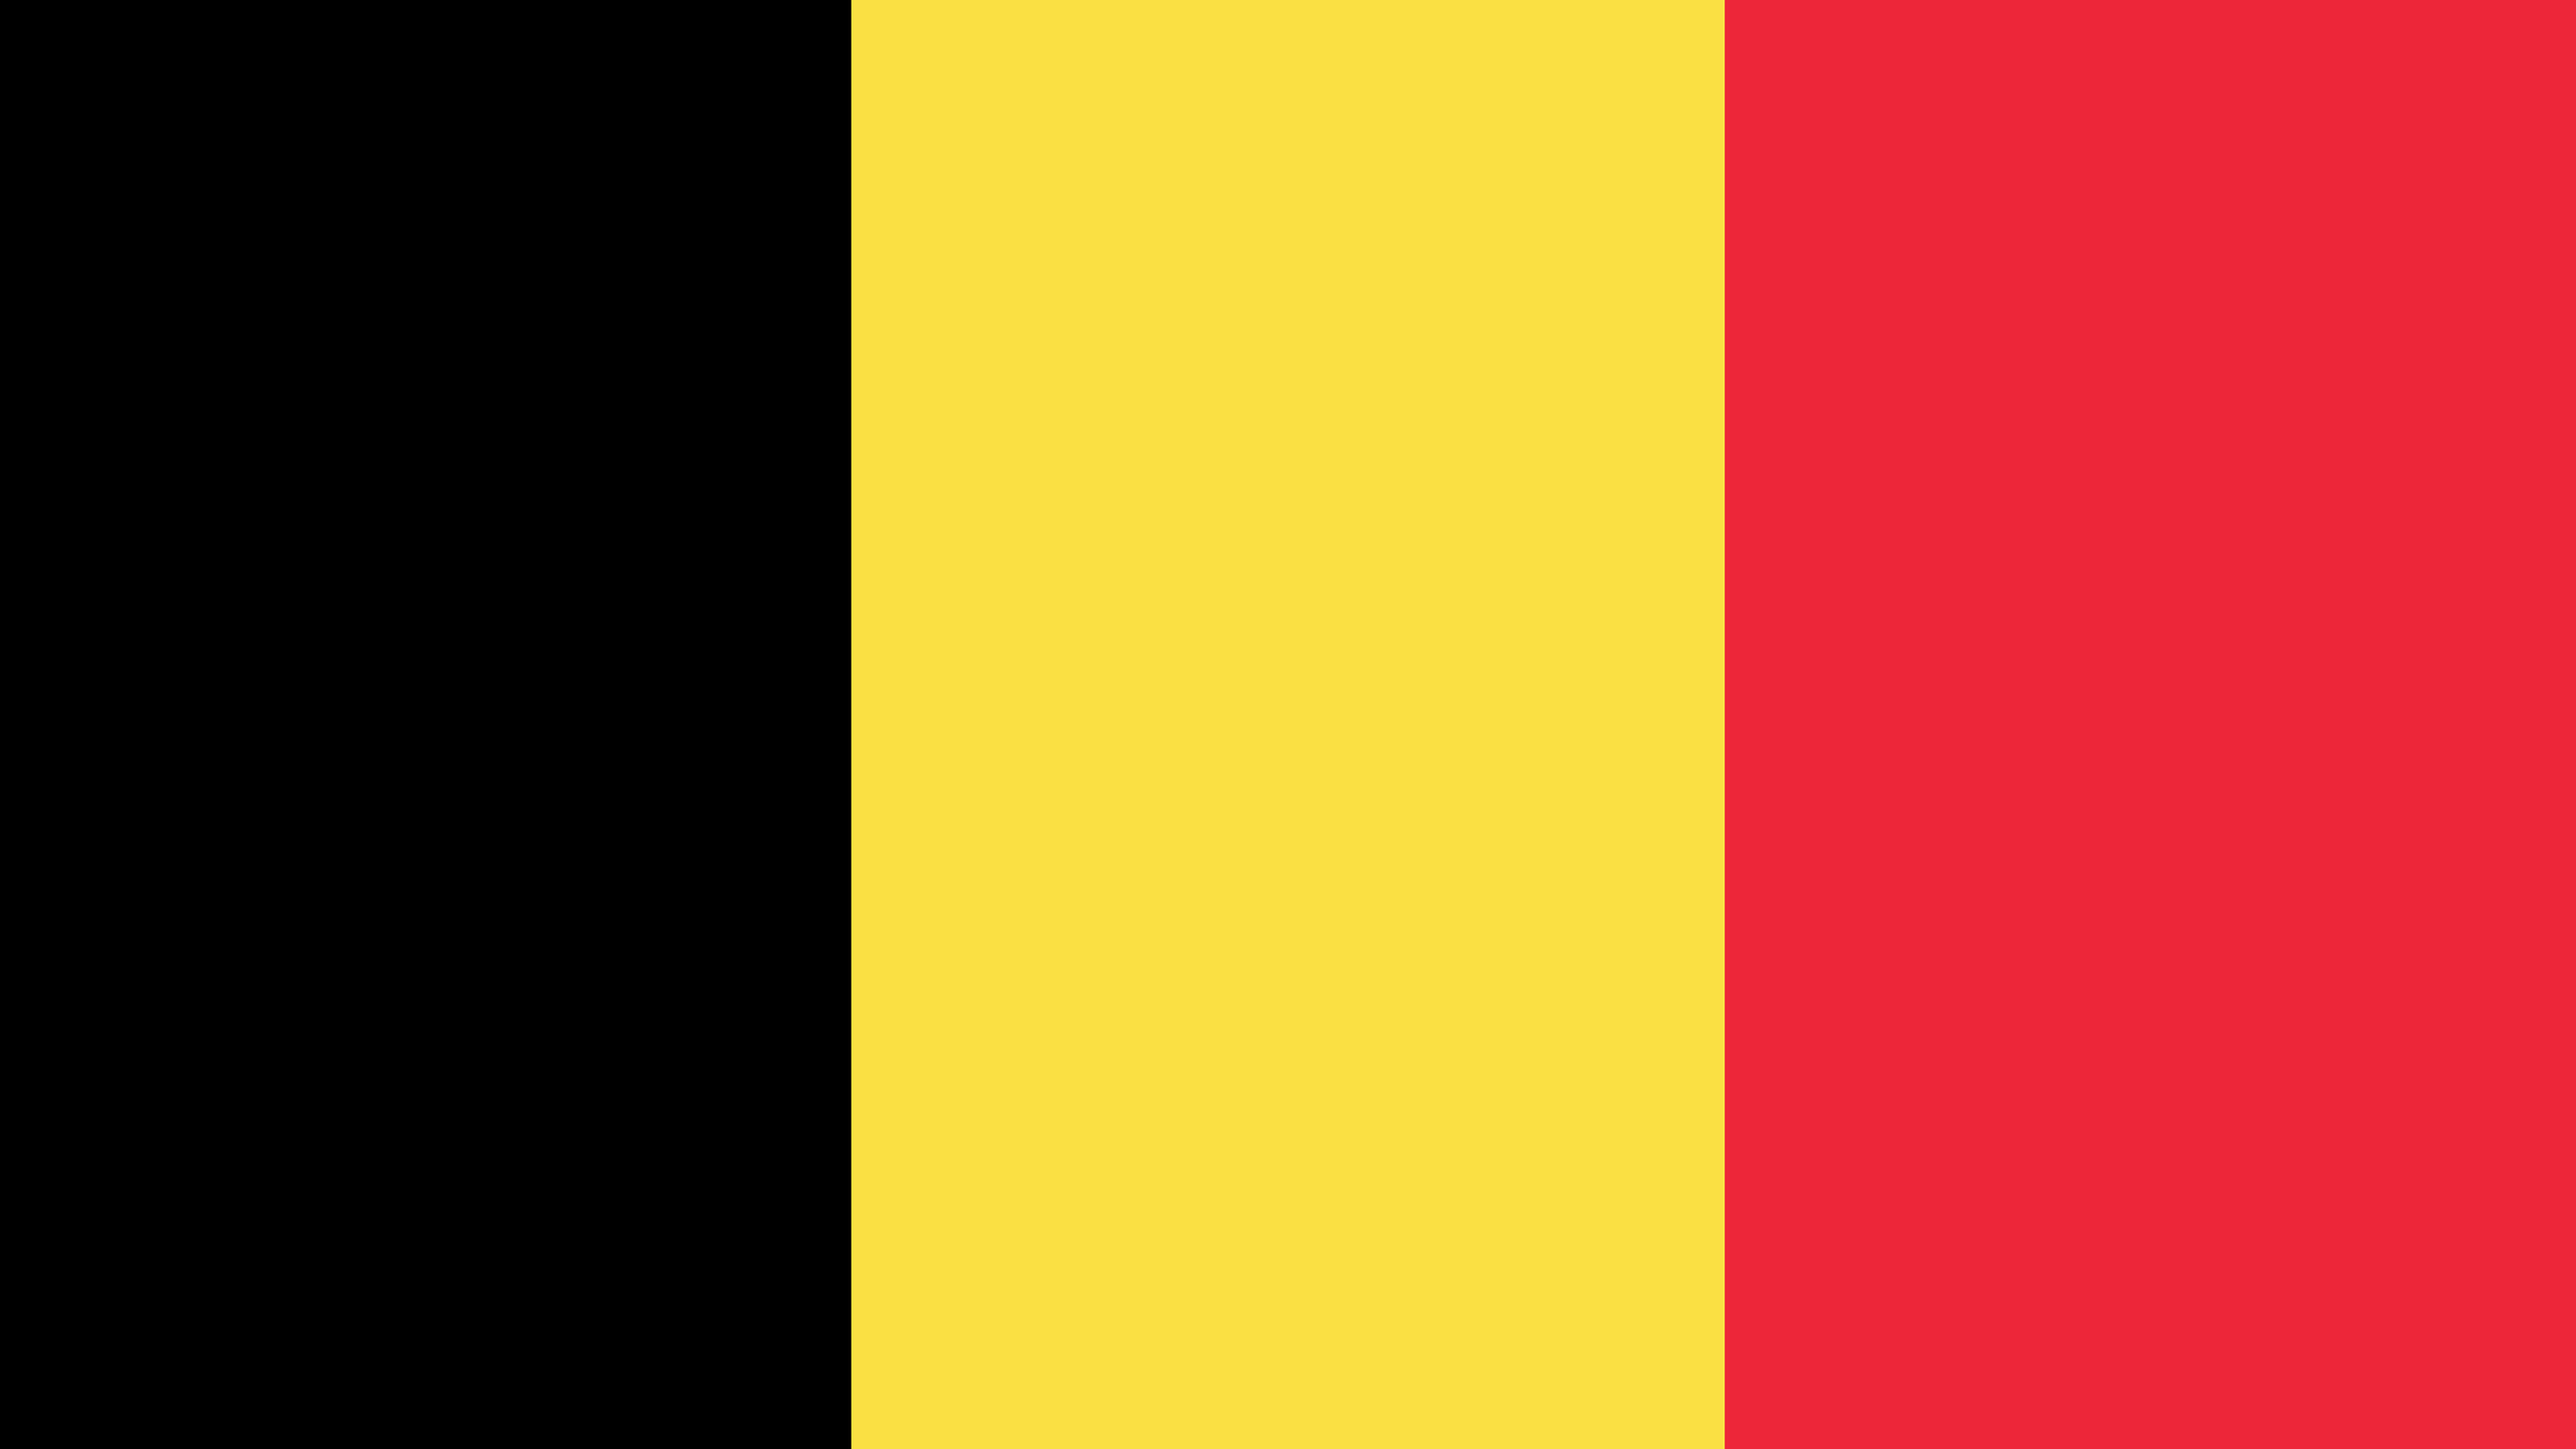 belgium flag uhd 4k wallpaper